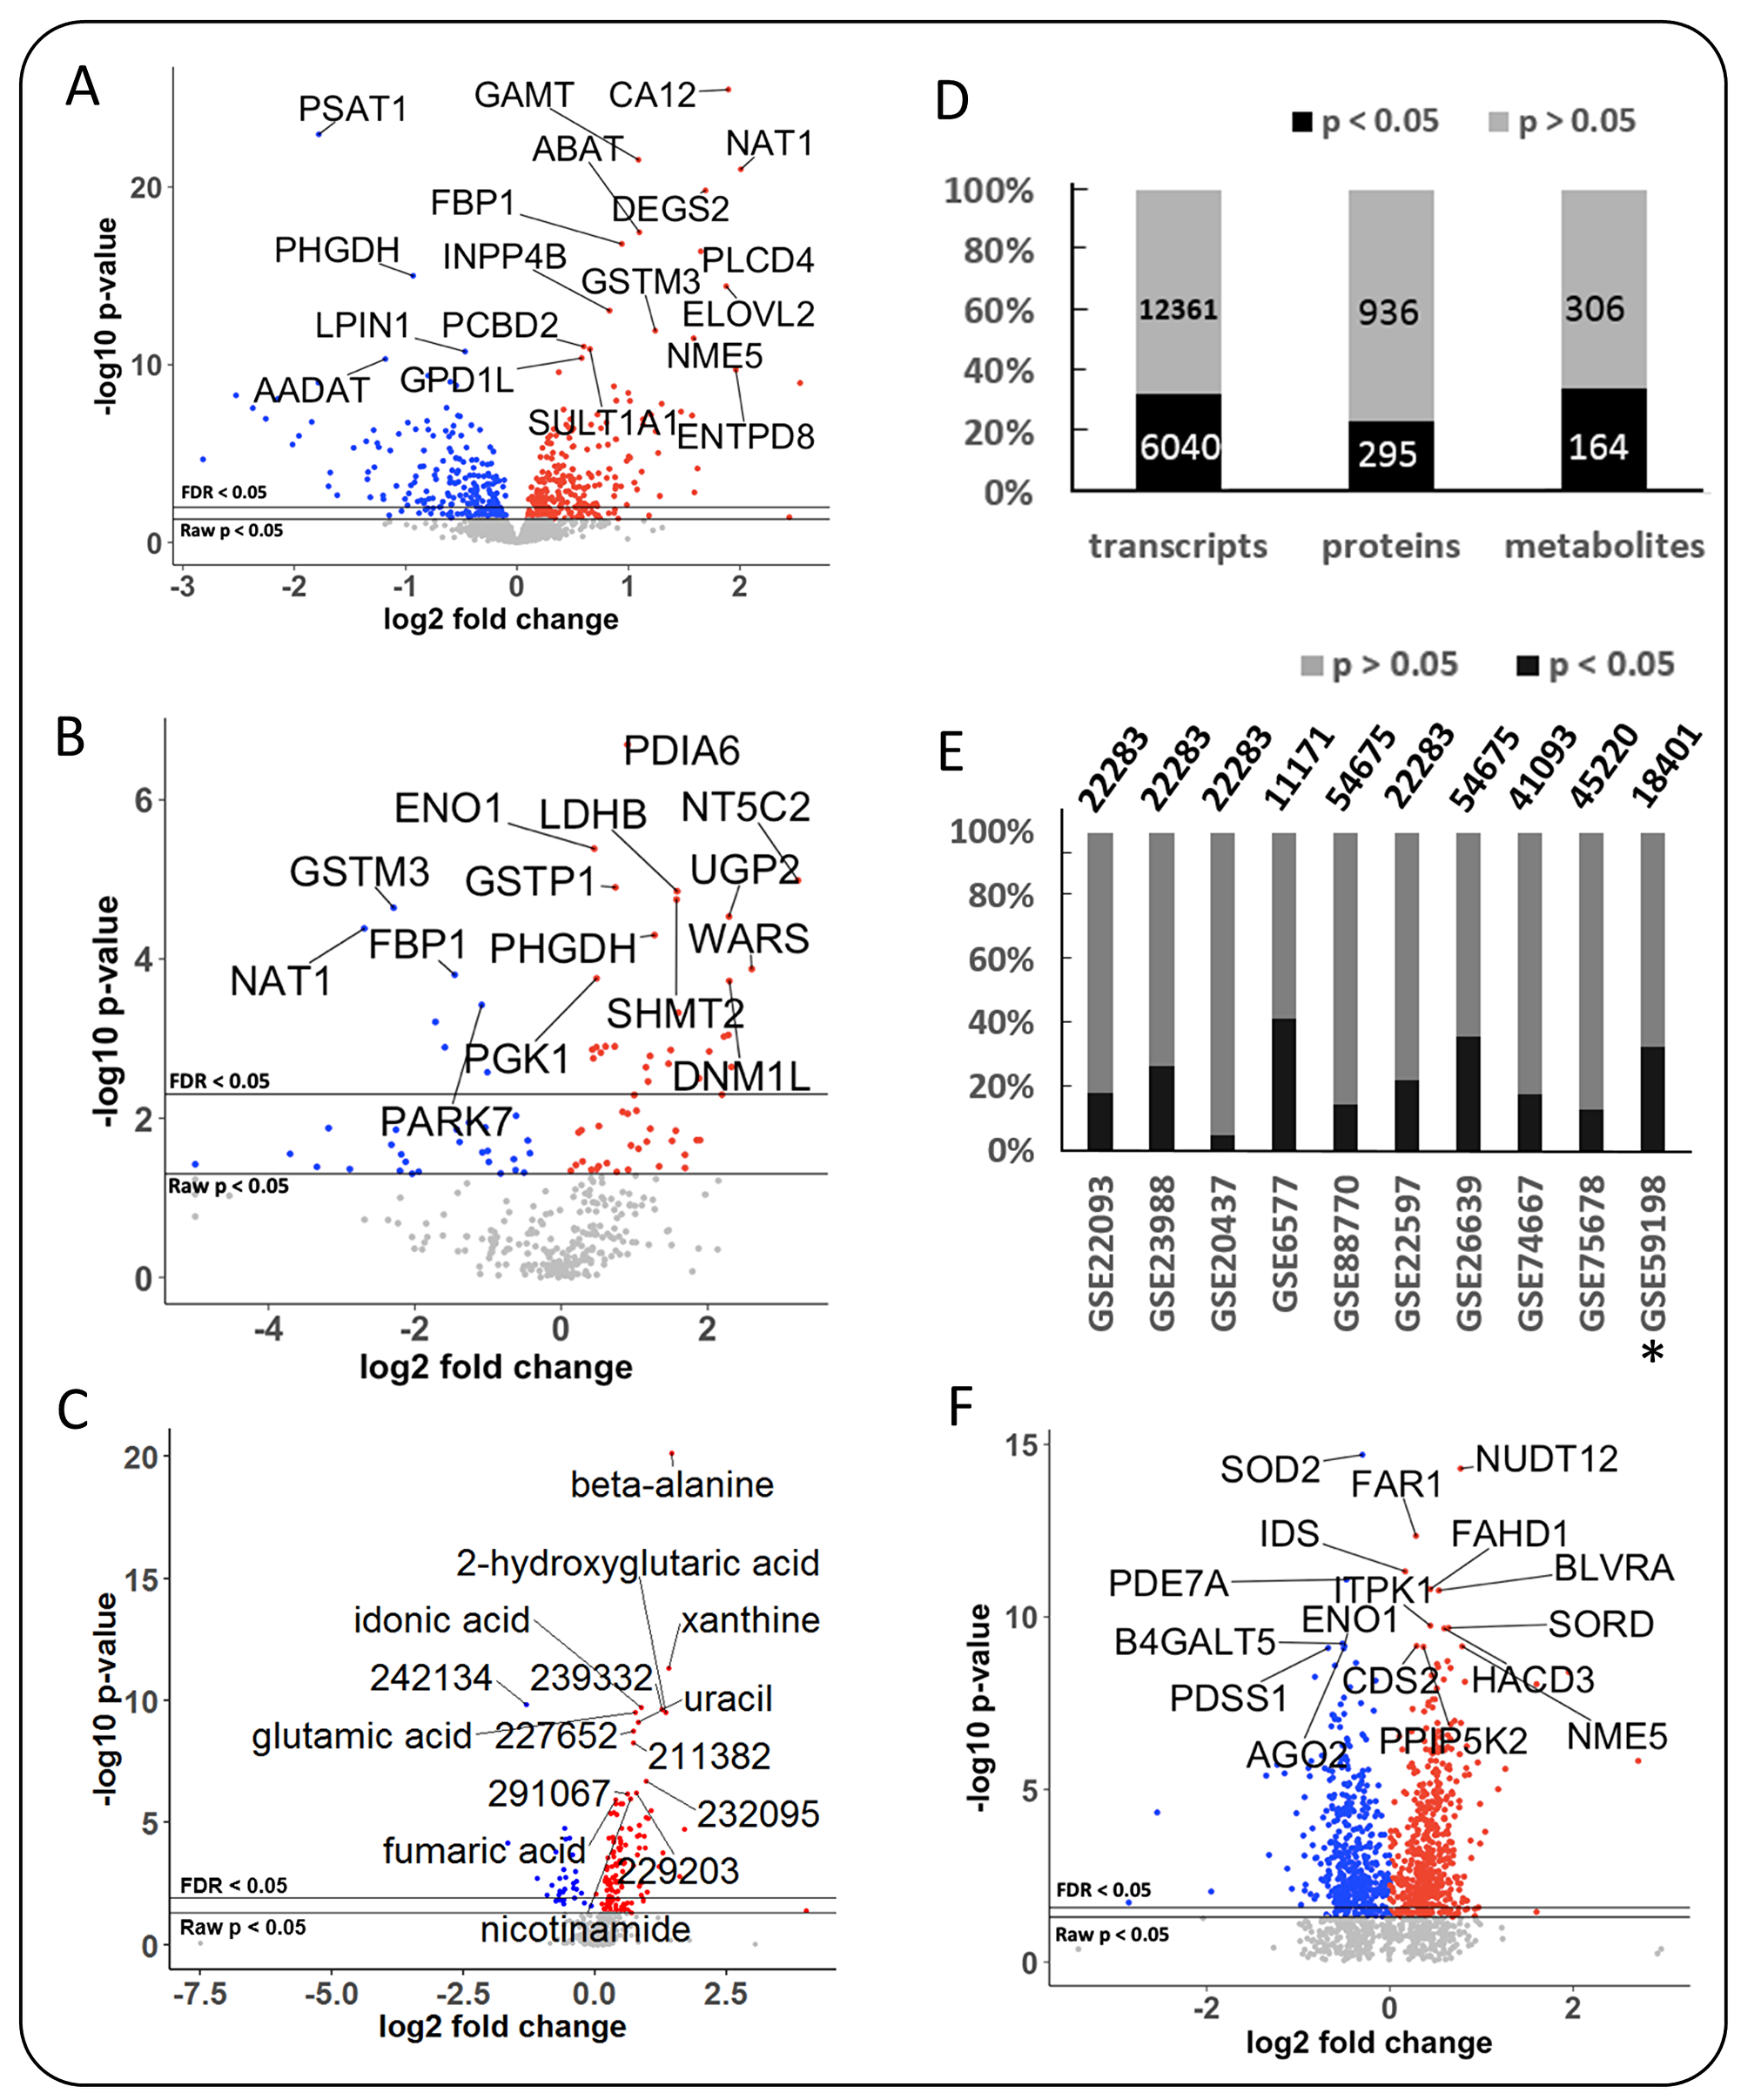 Differential expression of metabolic genes, metabolic enzymes and metabolites in breast cancer, using MetaCancer and GEO studies.